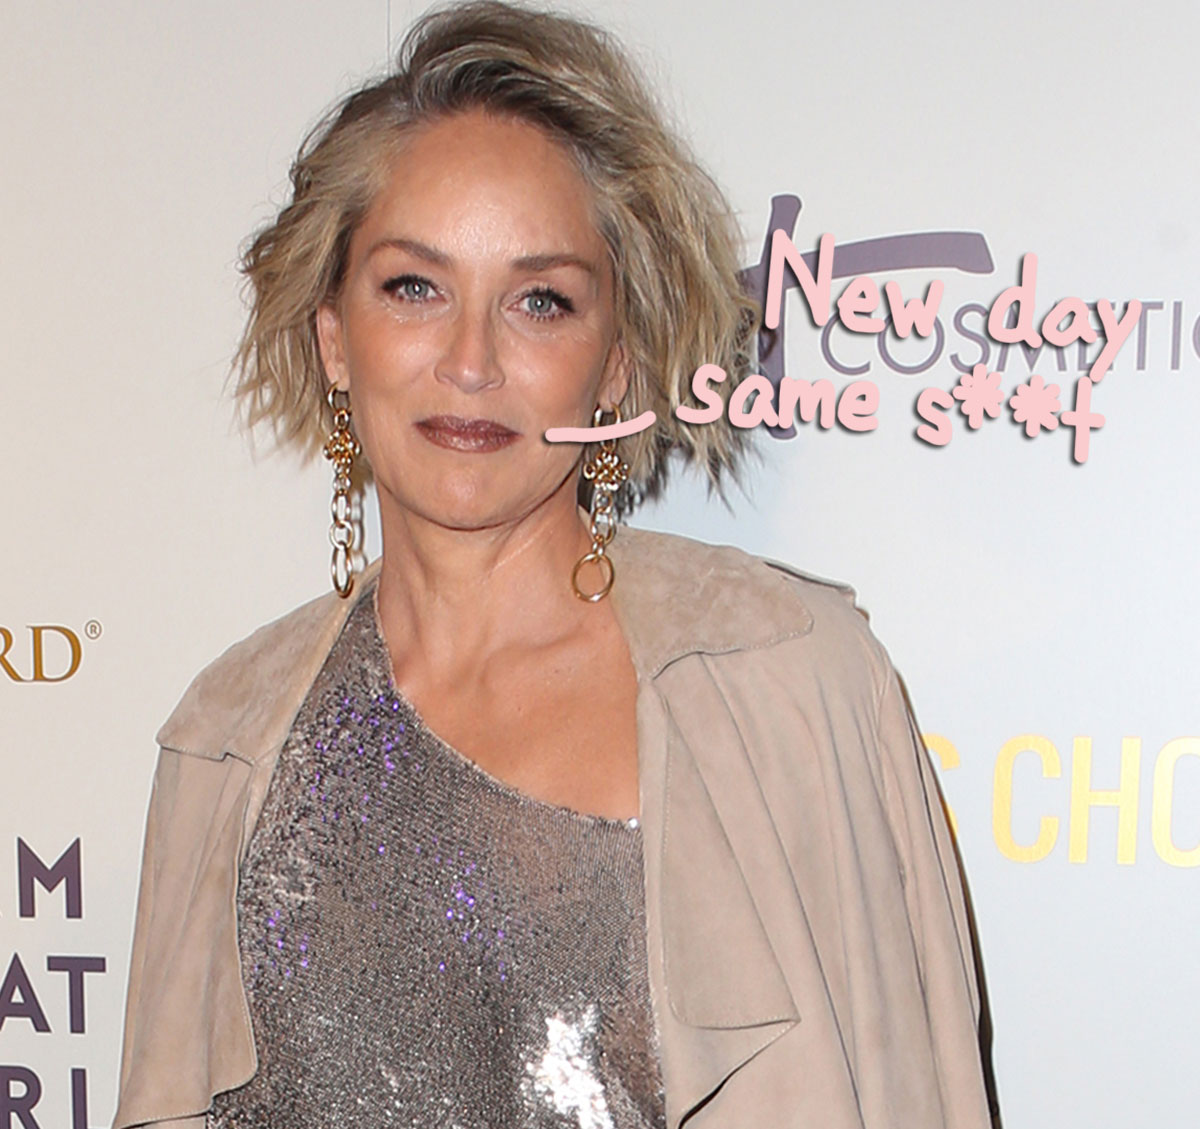 Sharon Stone Says Producer Told Her She 'Should F**k' Co-Star For Better 'Onscreen Chemistry'